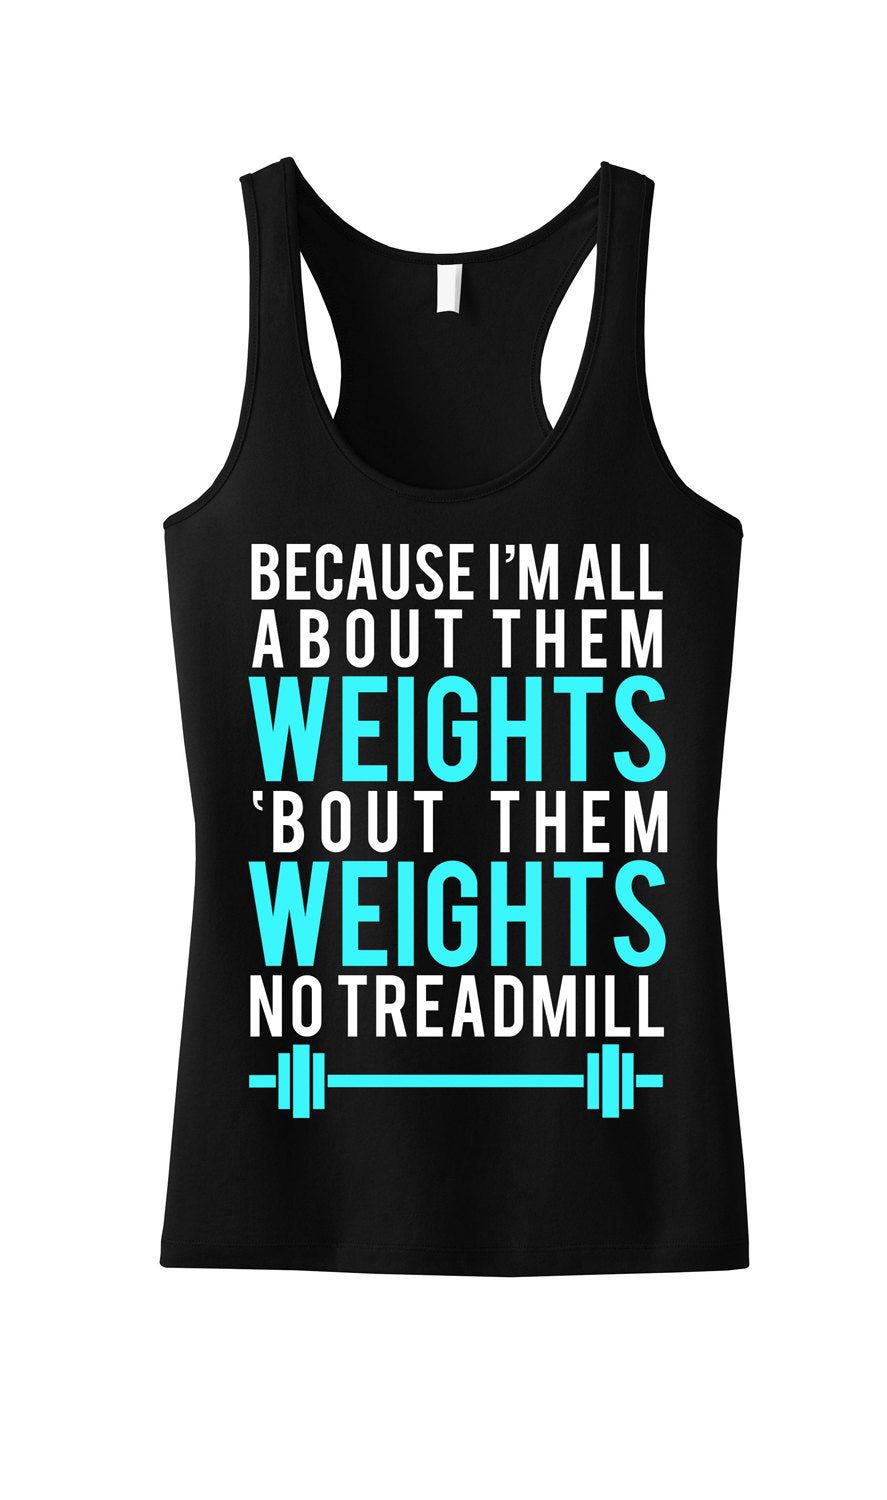 All About Them WEIGHTS Workout Tank Workout Clothing Workout   Etsy